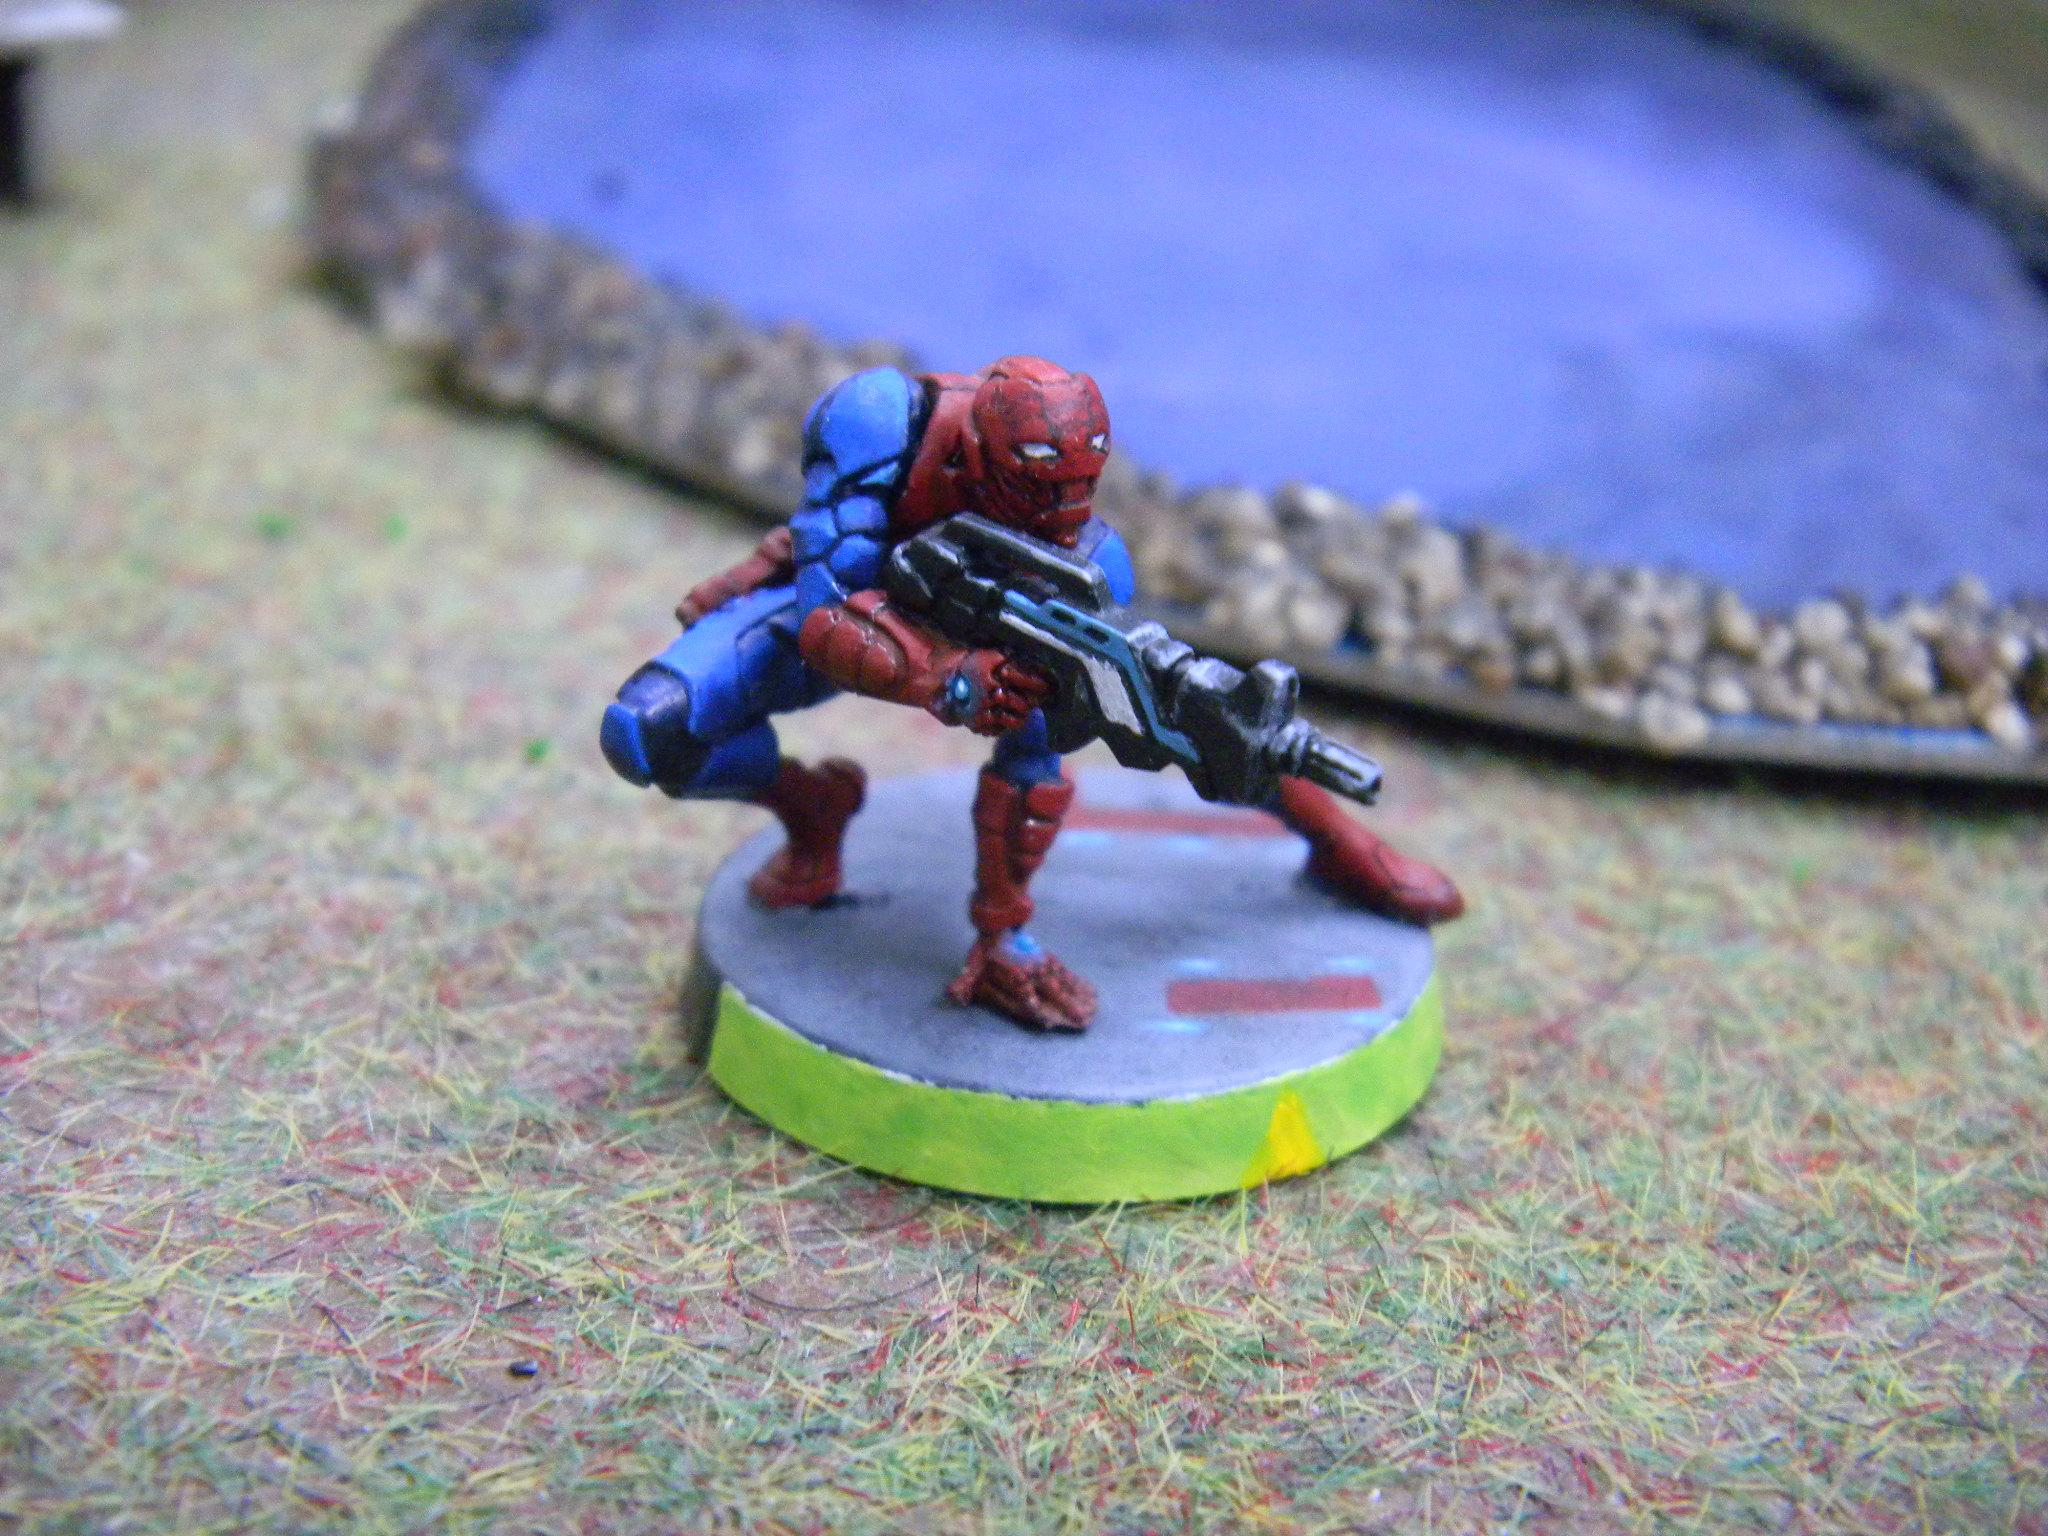 Infinity, Snipers, Spiderman